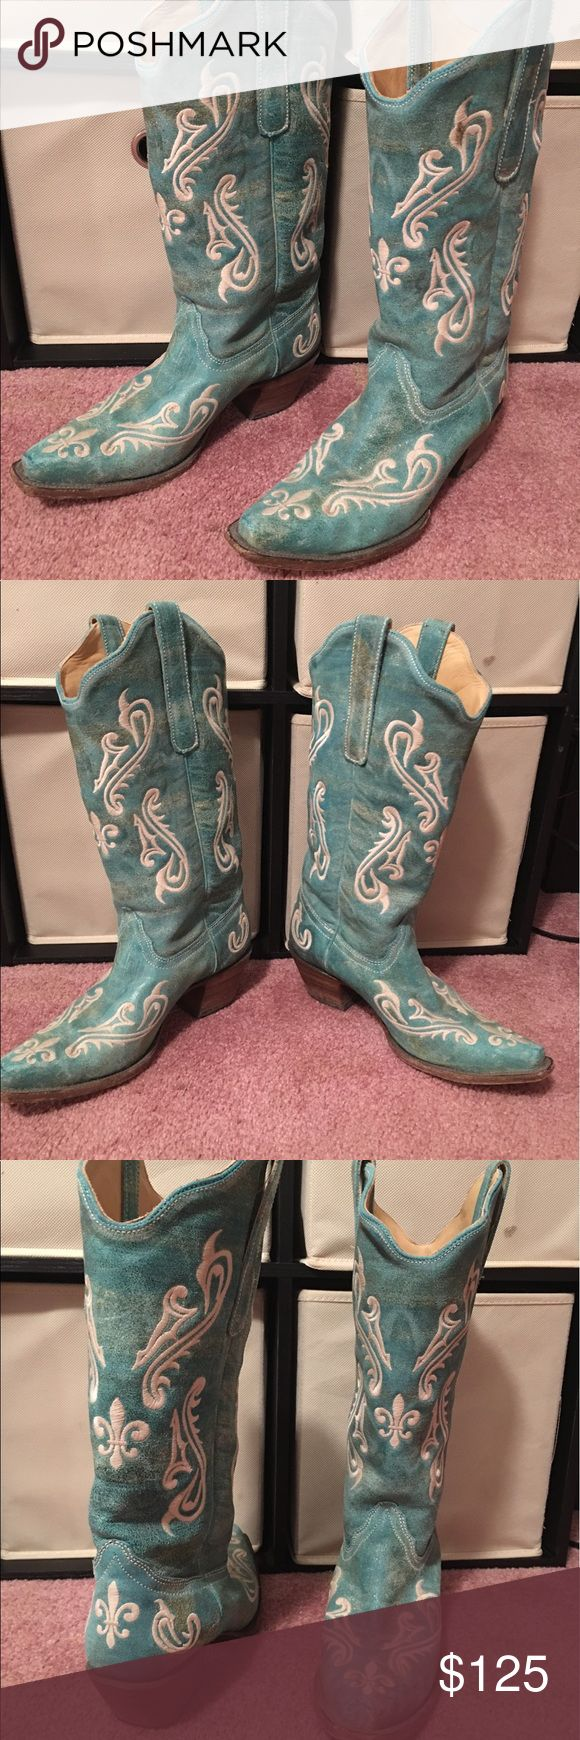 Corral Cowboy Boots (woman's) Woman's pointed toe Cowboy Boots Brand: Corral Size: 9 Width: Medium Corral Shoes Heeled Boots